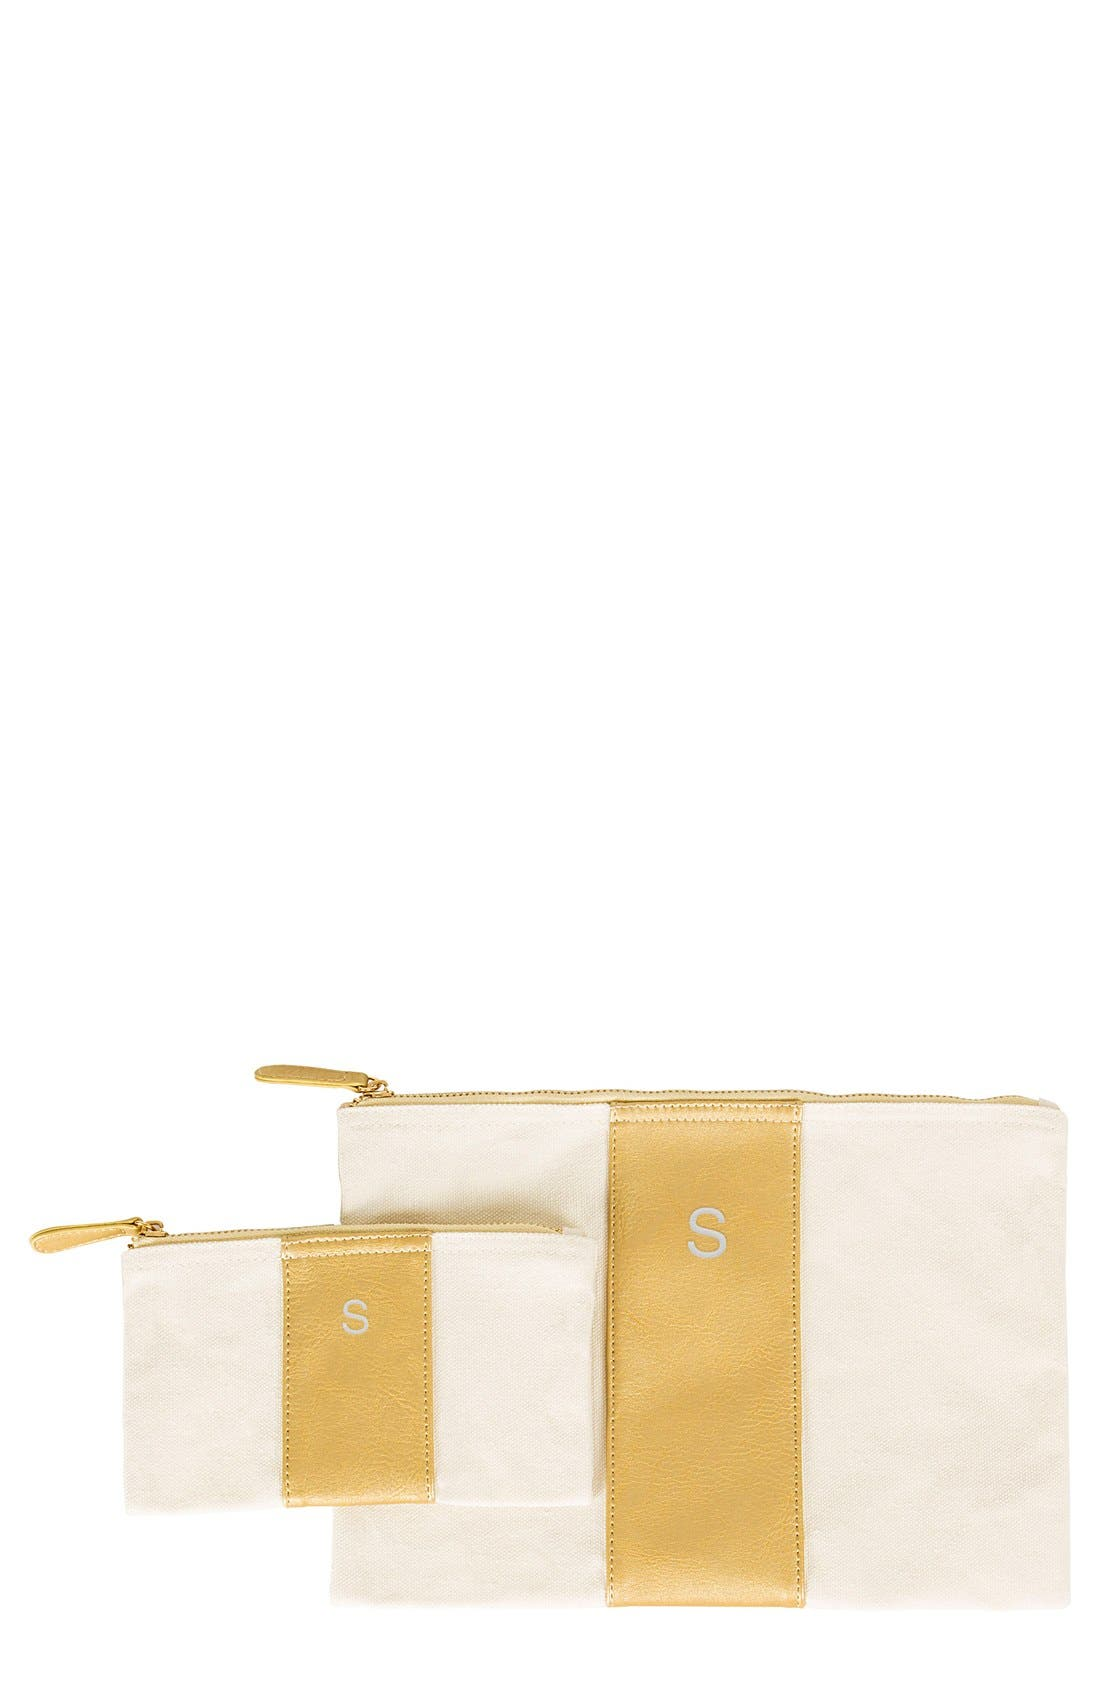 Personalized Faux Leather Clutch,                             Main thumbnail 37, color,